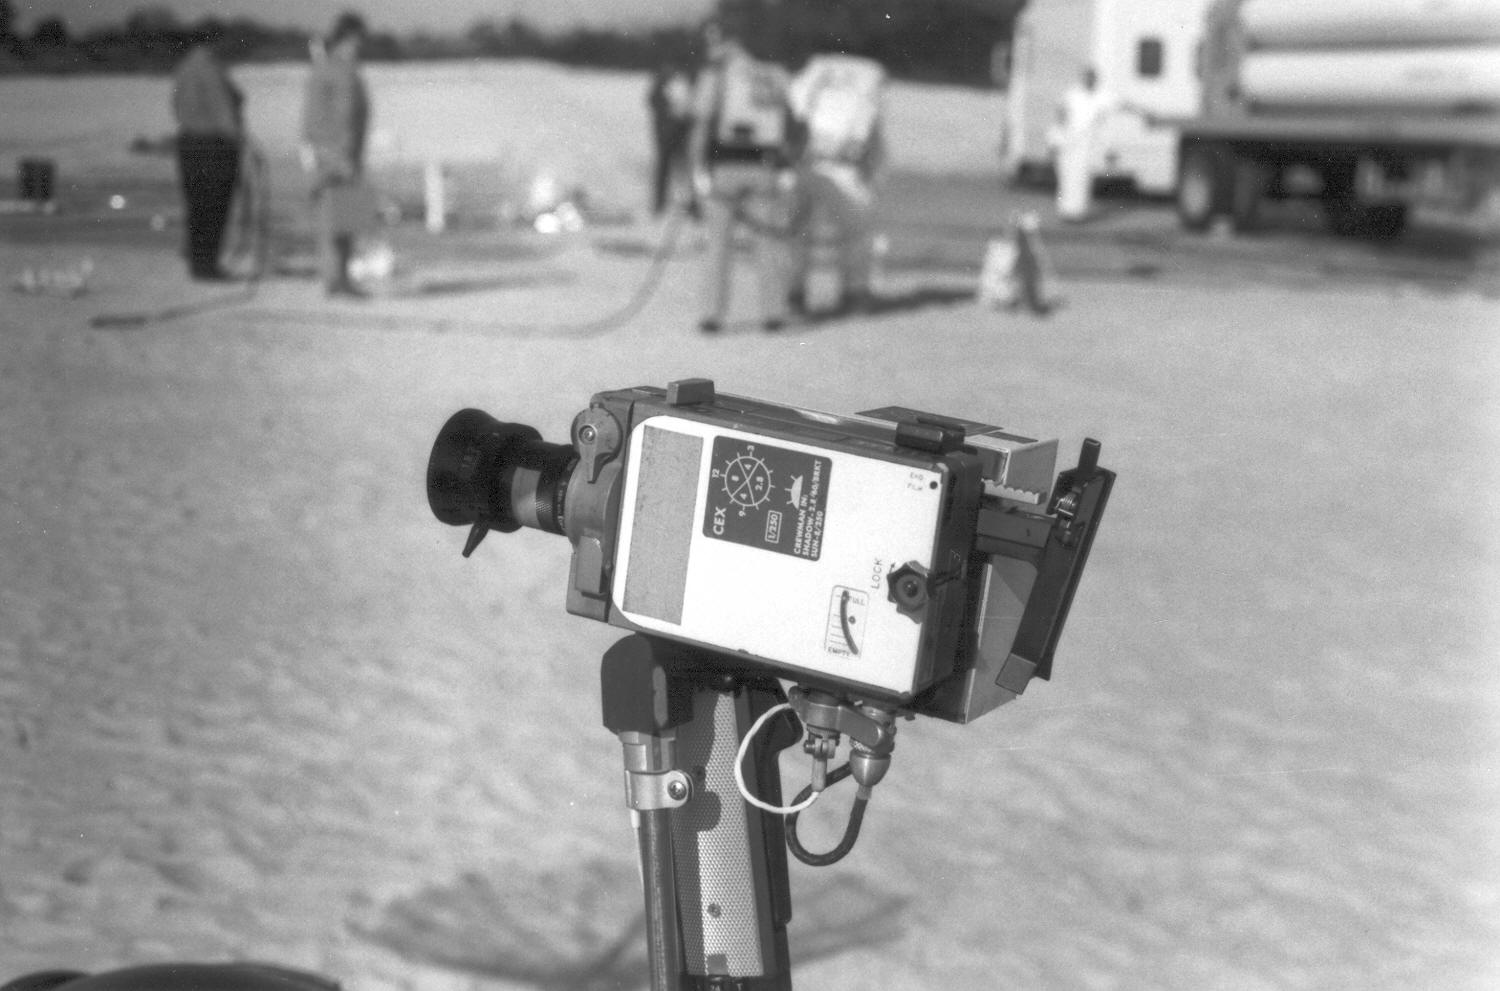 Loading The Rover Wiring Diagram For Hardsuits Ground Fault Circuit Breaker Dac Is A 16 Mm Movie Camera That Charlie Will Mount On His Handhold As Shown In Figure 2 14 From Lrv Operations Handbook